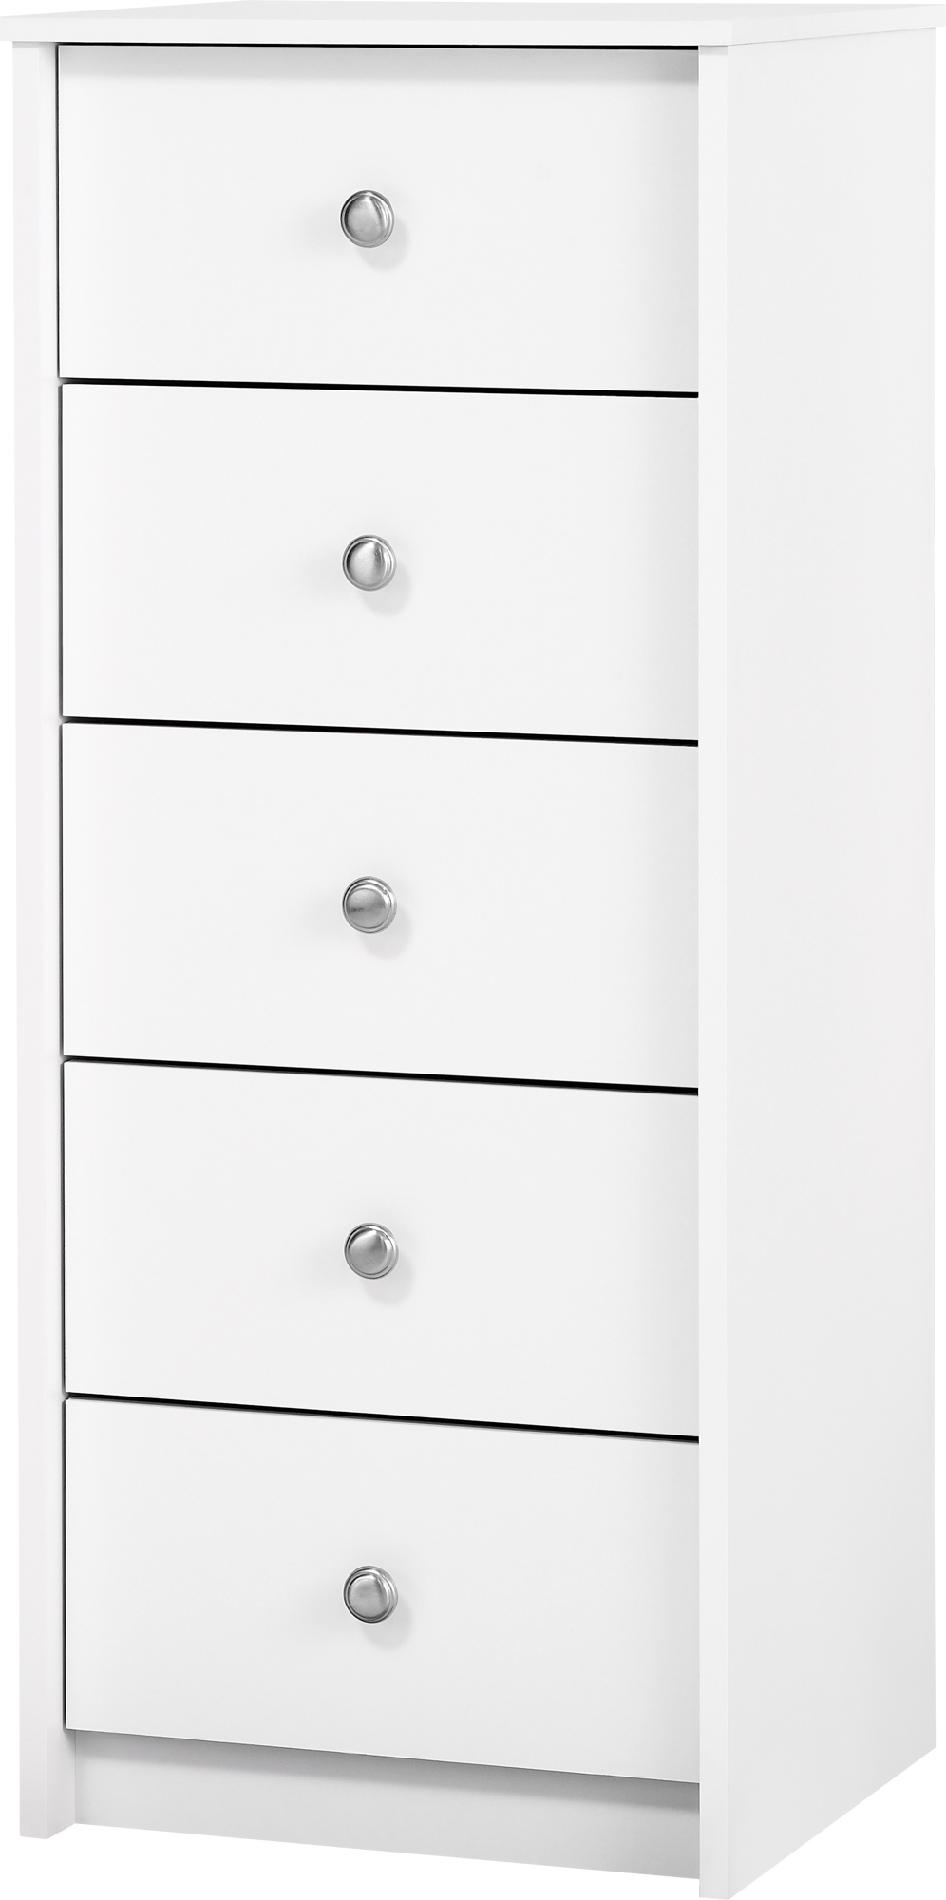 White Belmont Vertical Lingerie Chest